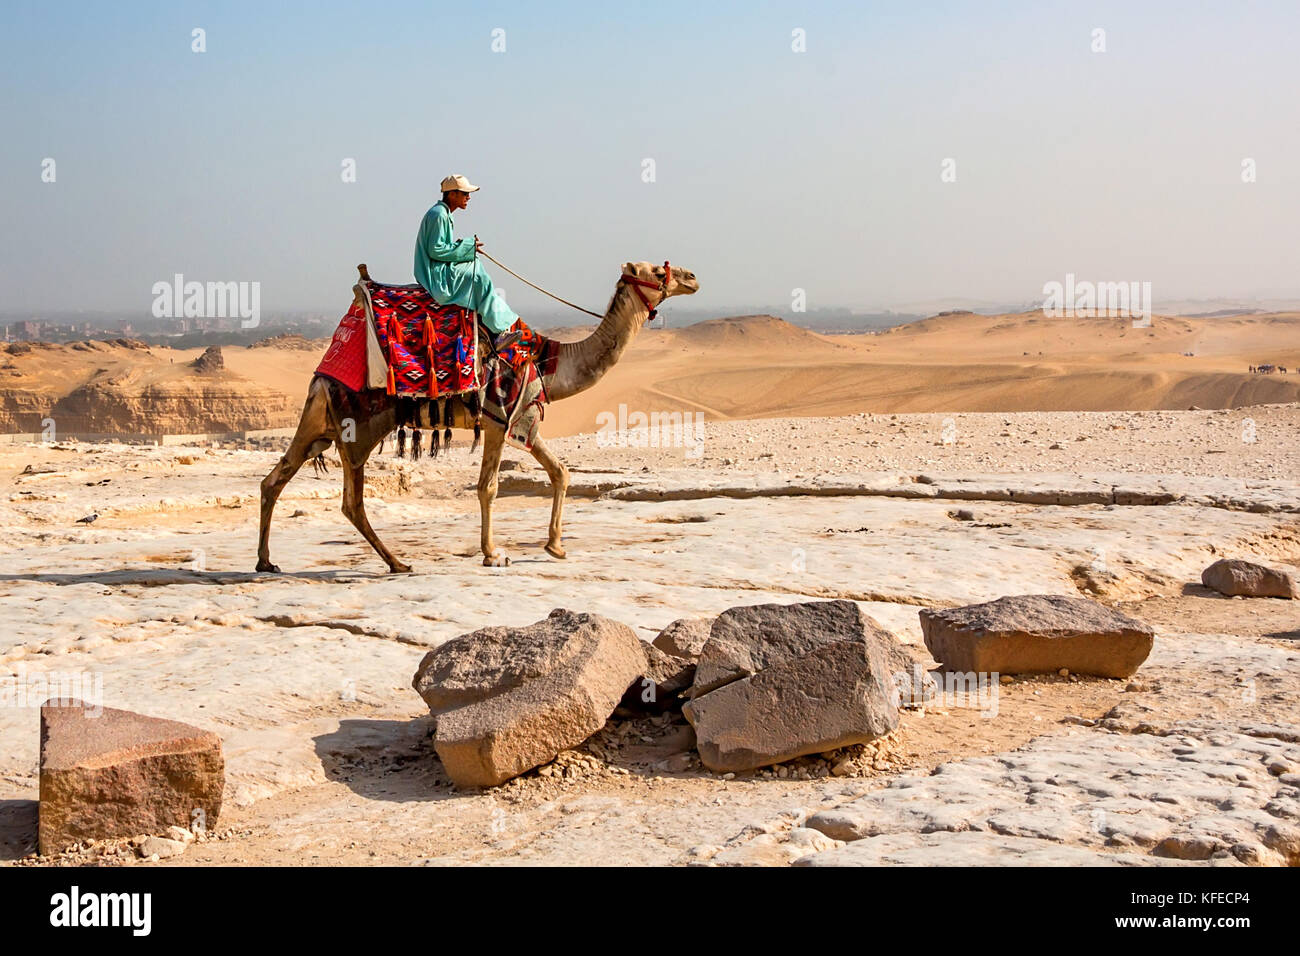 GIZA, EGYPT- FEBRUARY 2010: Bedouin on camel - Stock Image